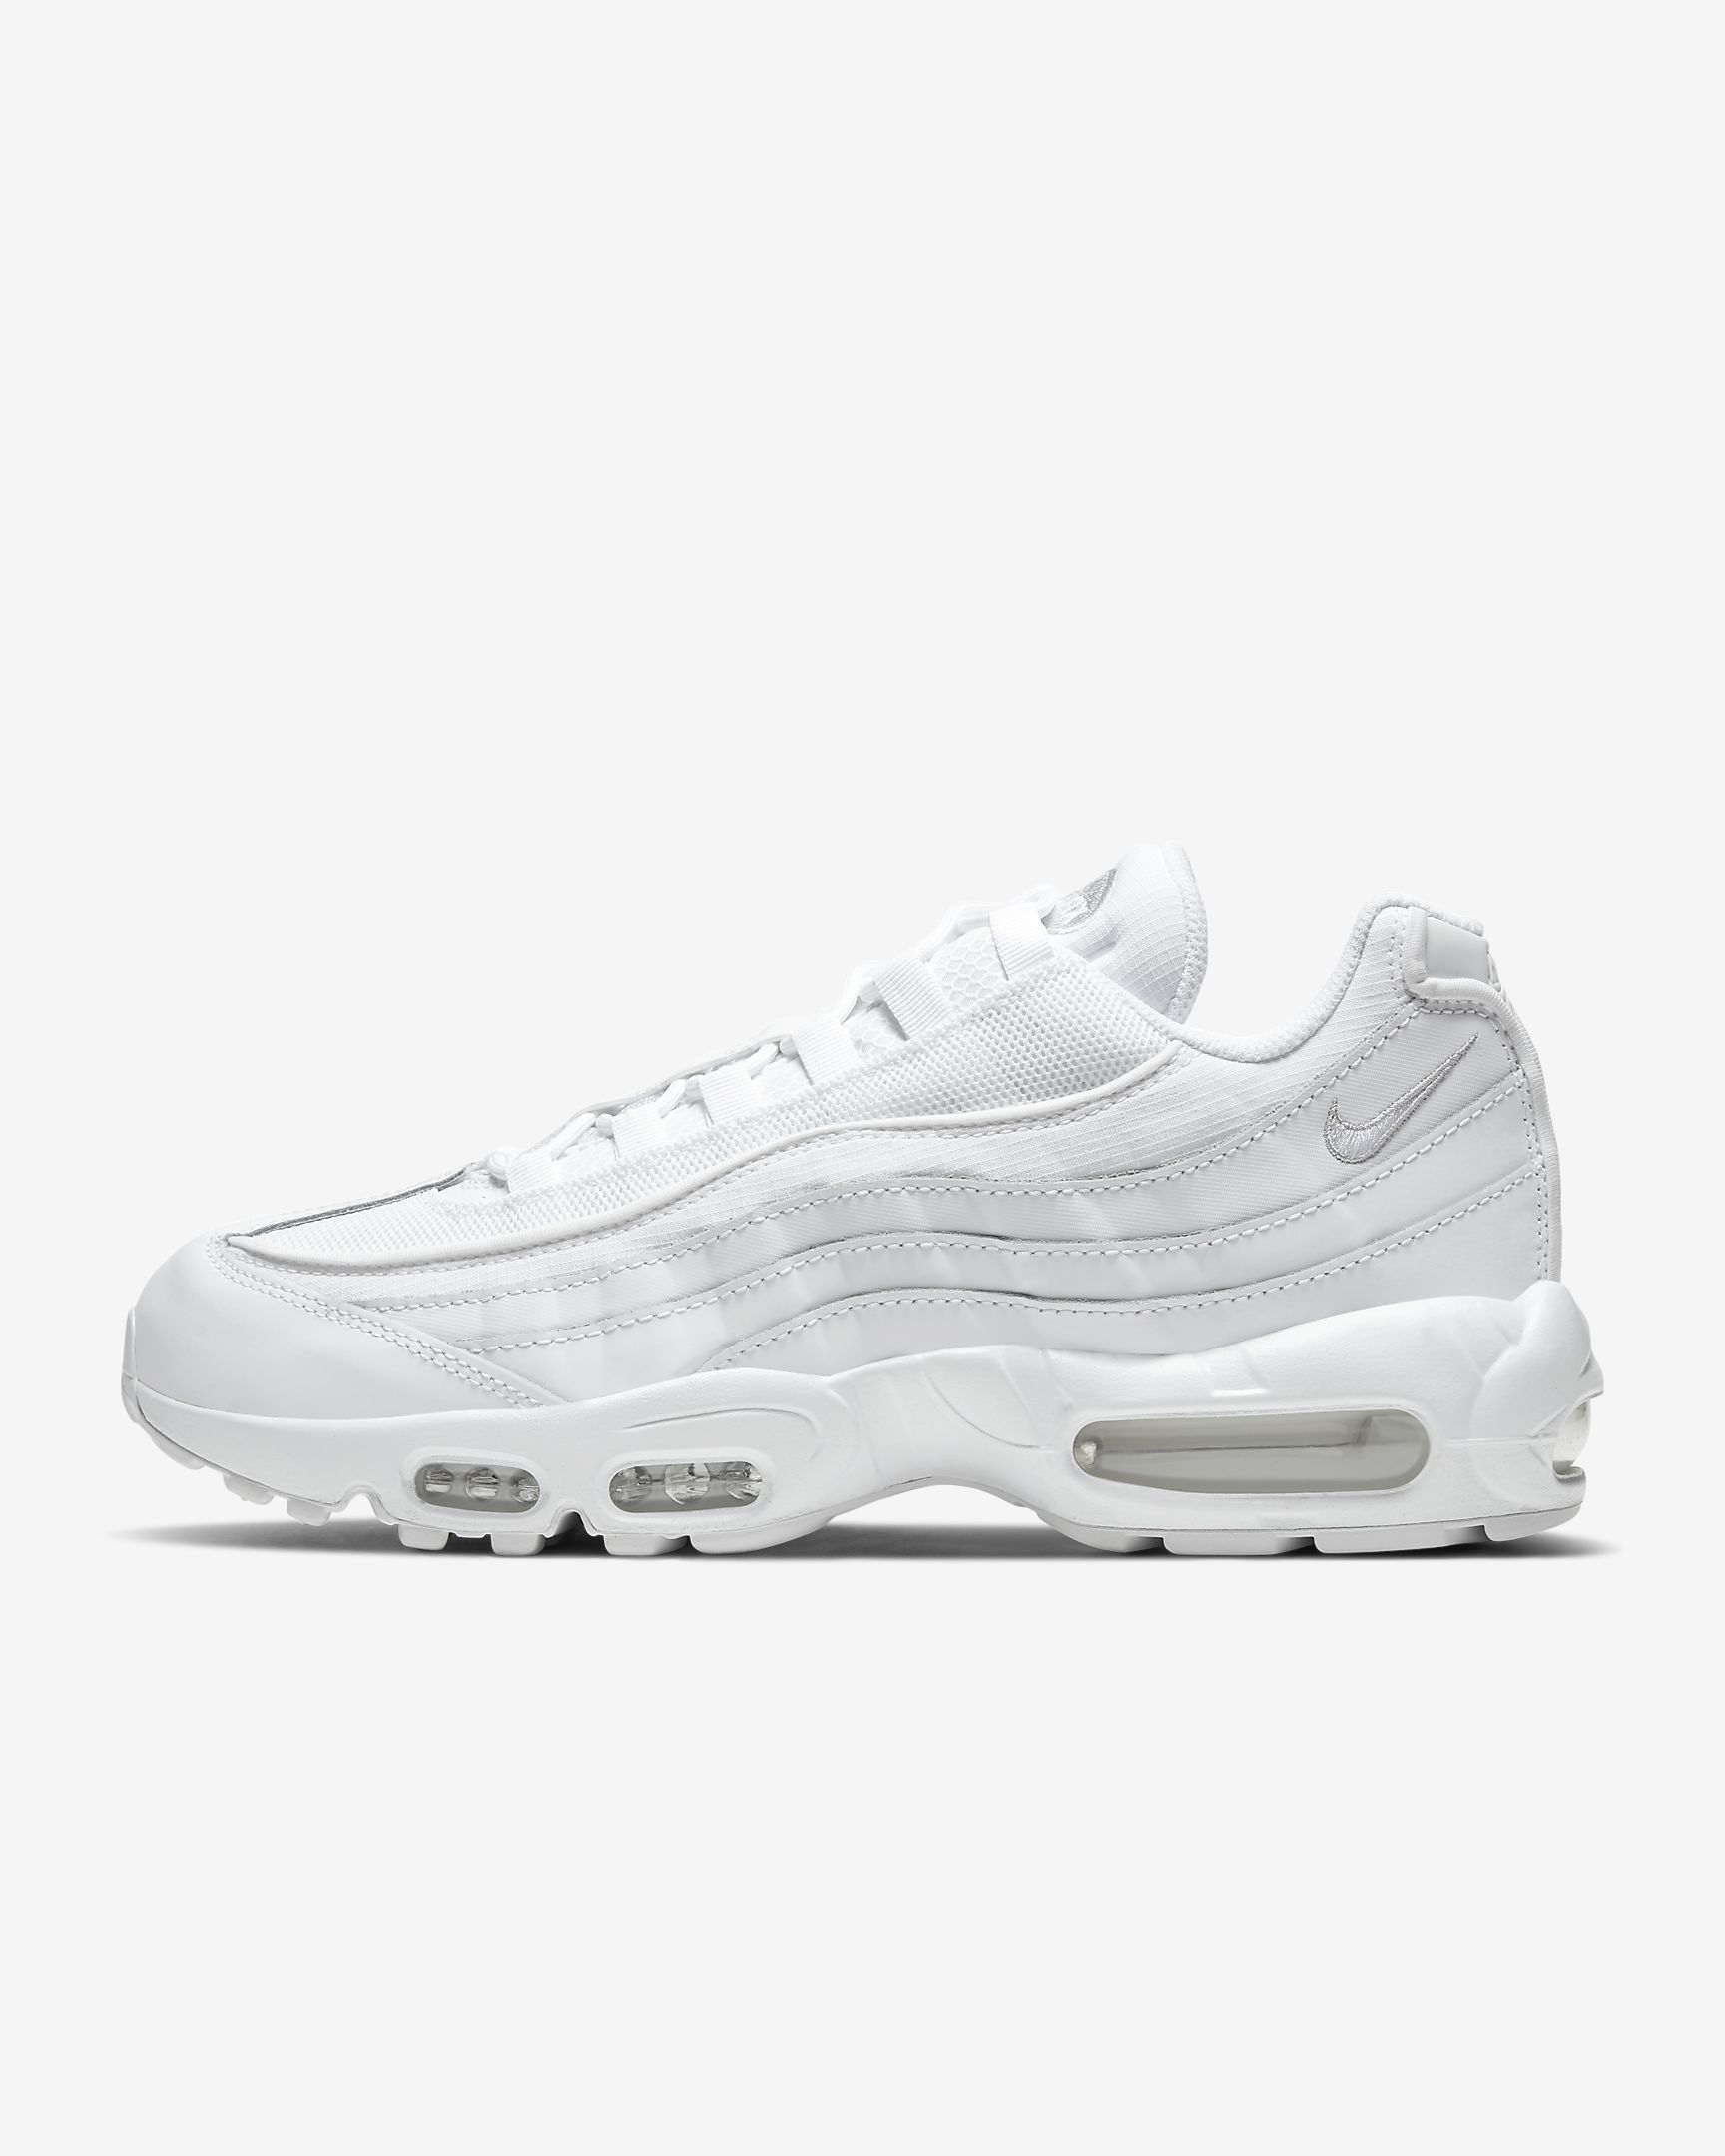 Nike Air Max 95 Essential - Size 13 US